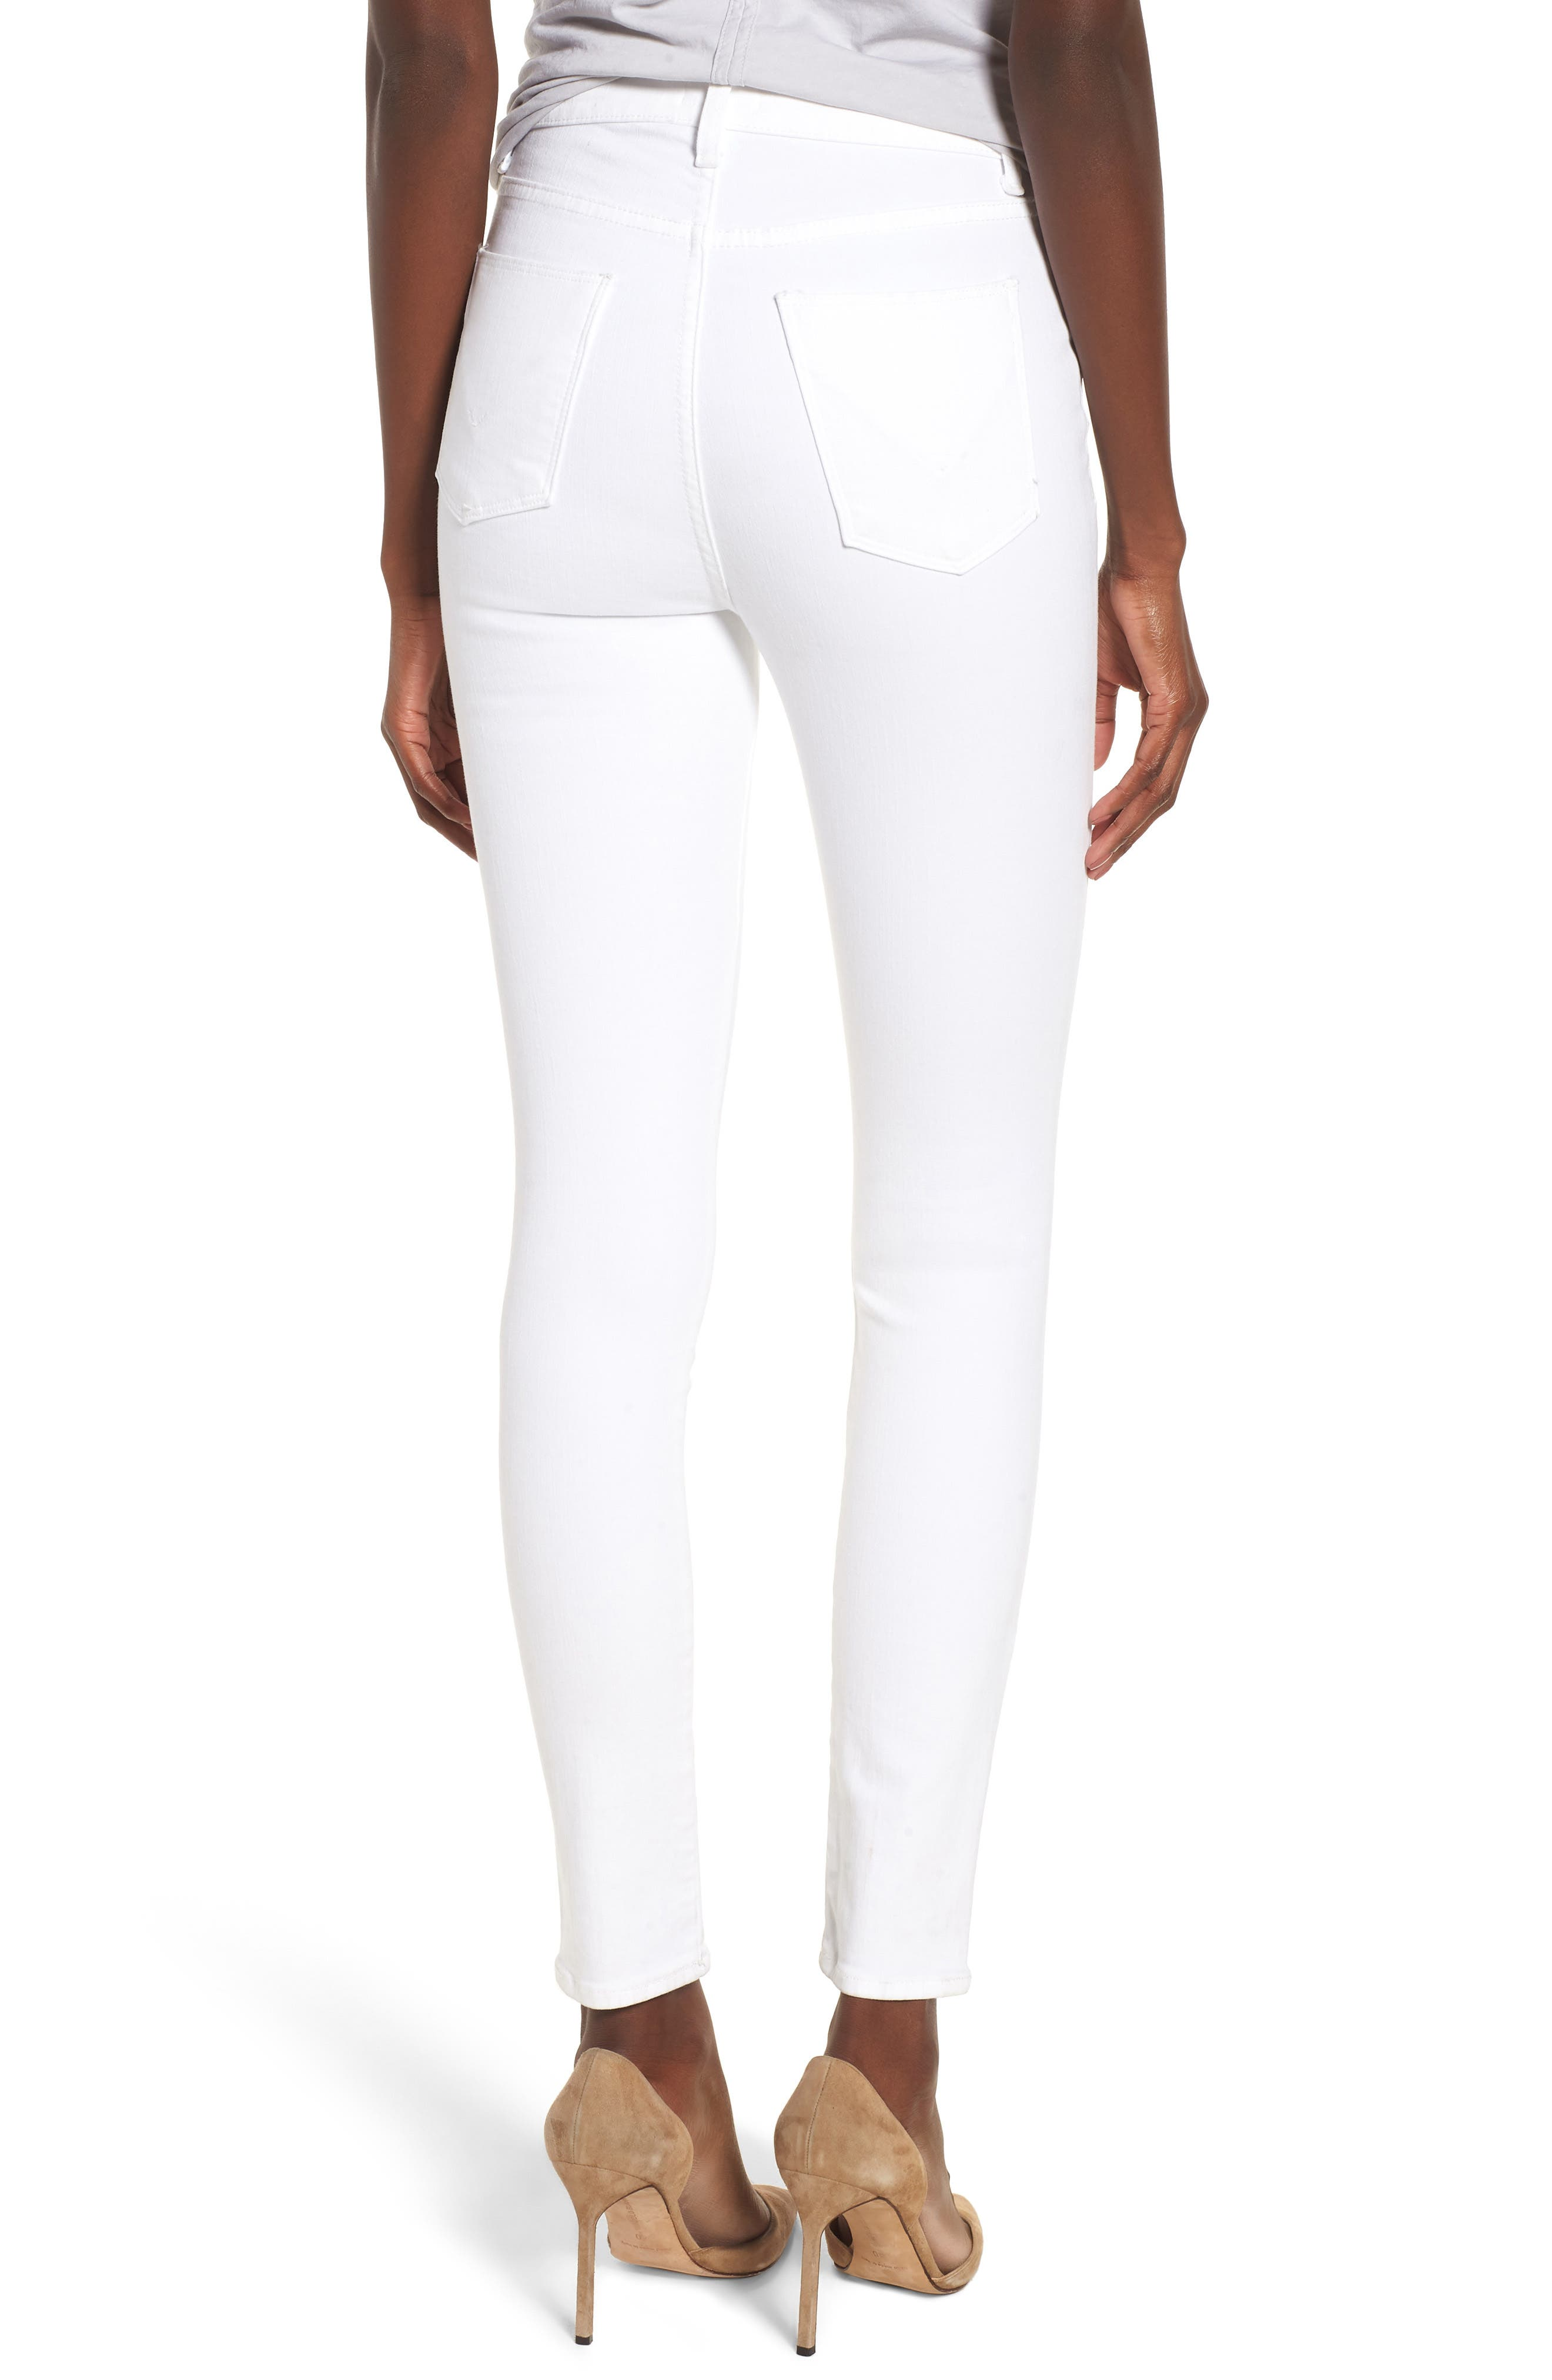 Bullocks Lace-Up High Waist Super Skinny Jeans,                             Alternate thumbnail 2, color,                             Optical White